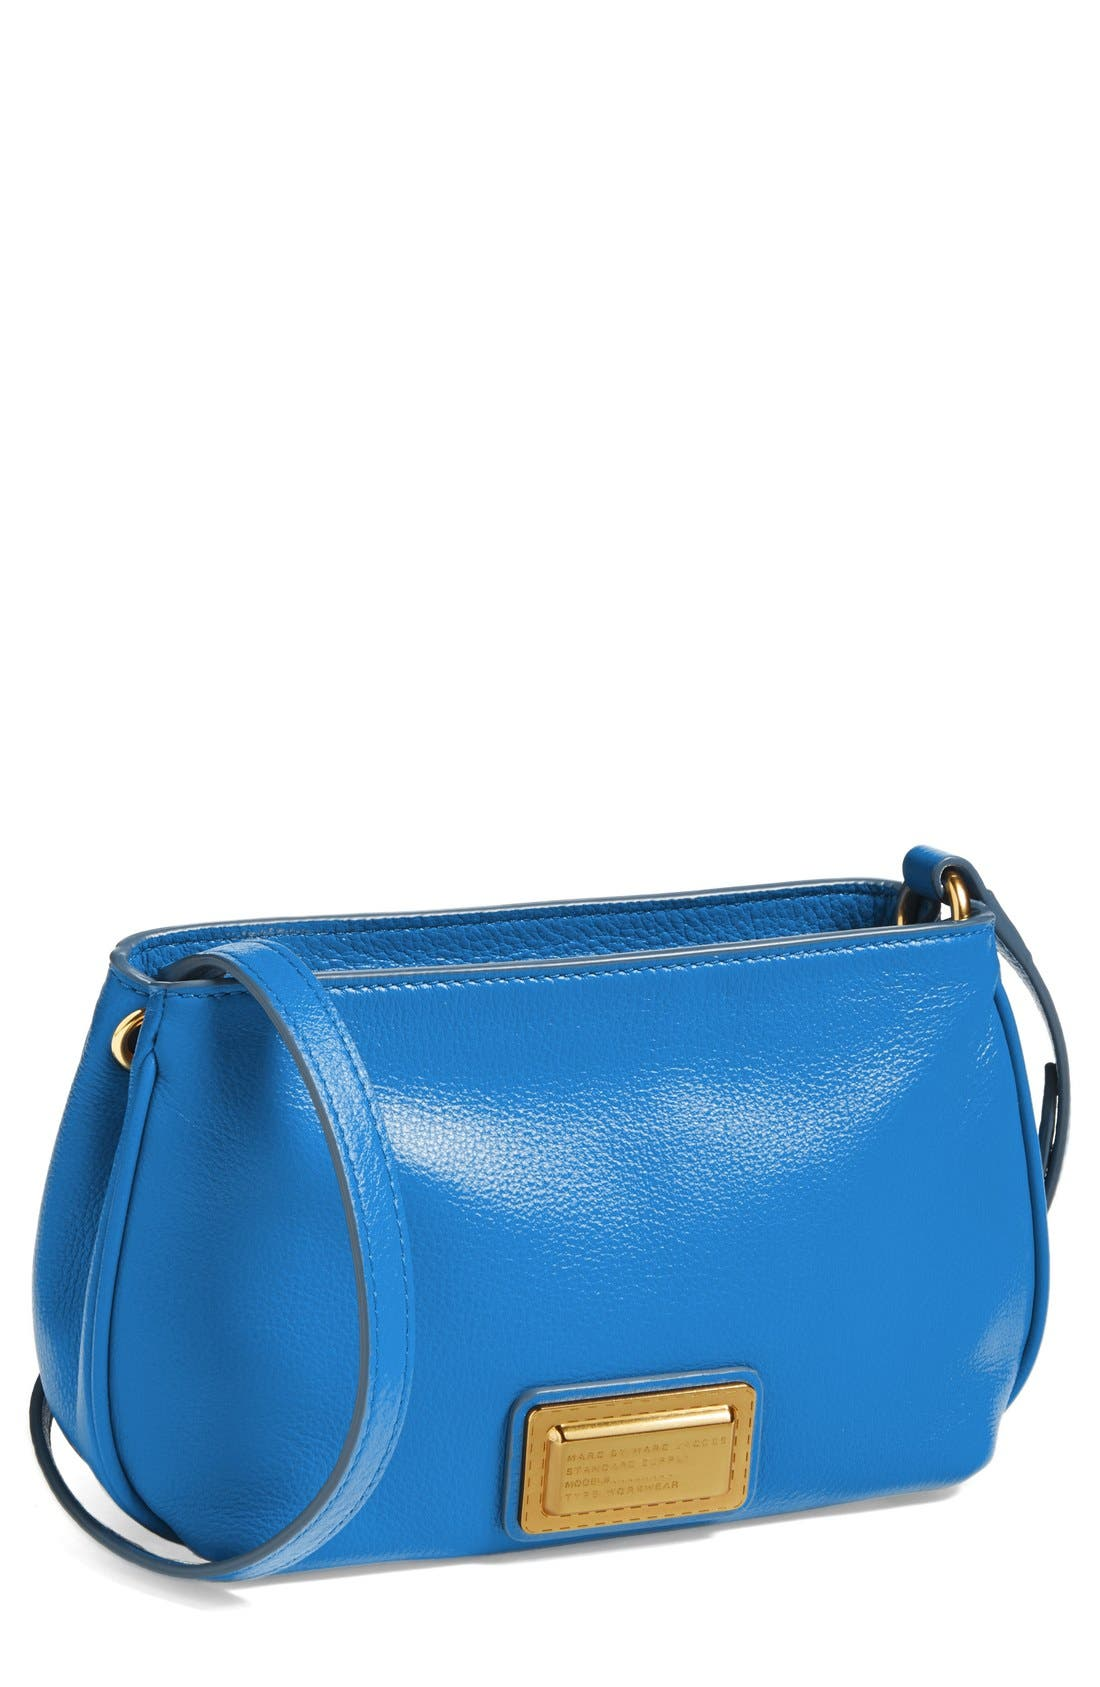 Alternate Image 1 Selected - MARC BY MARC JACOBS 'Percy' Crossbody Bag